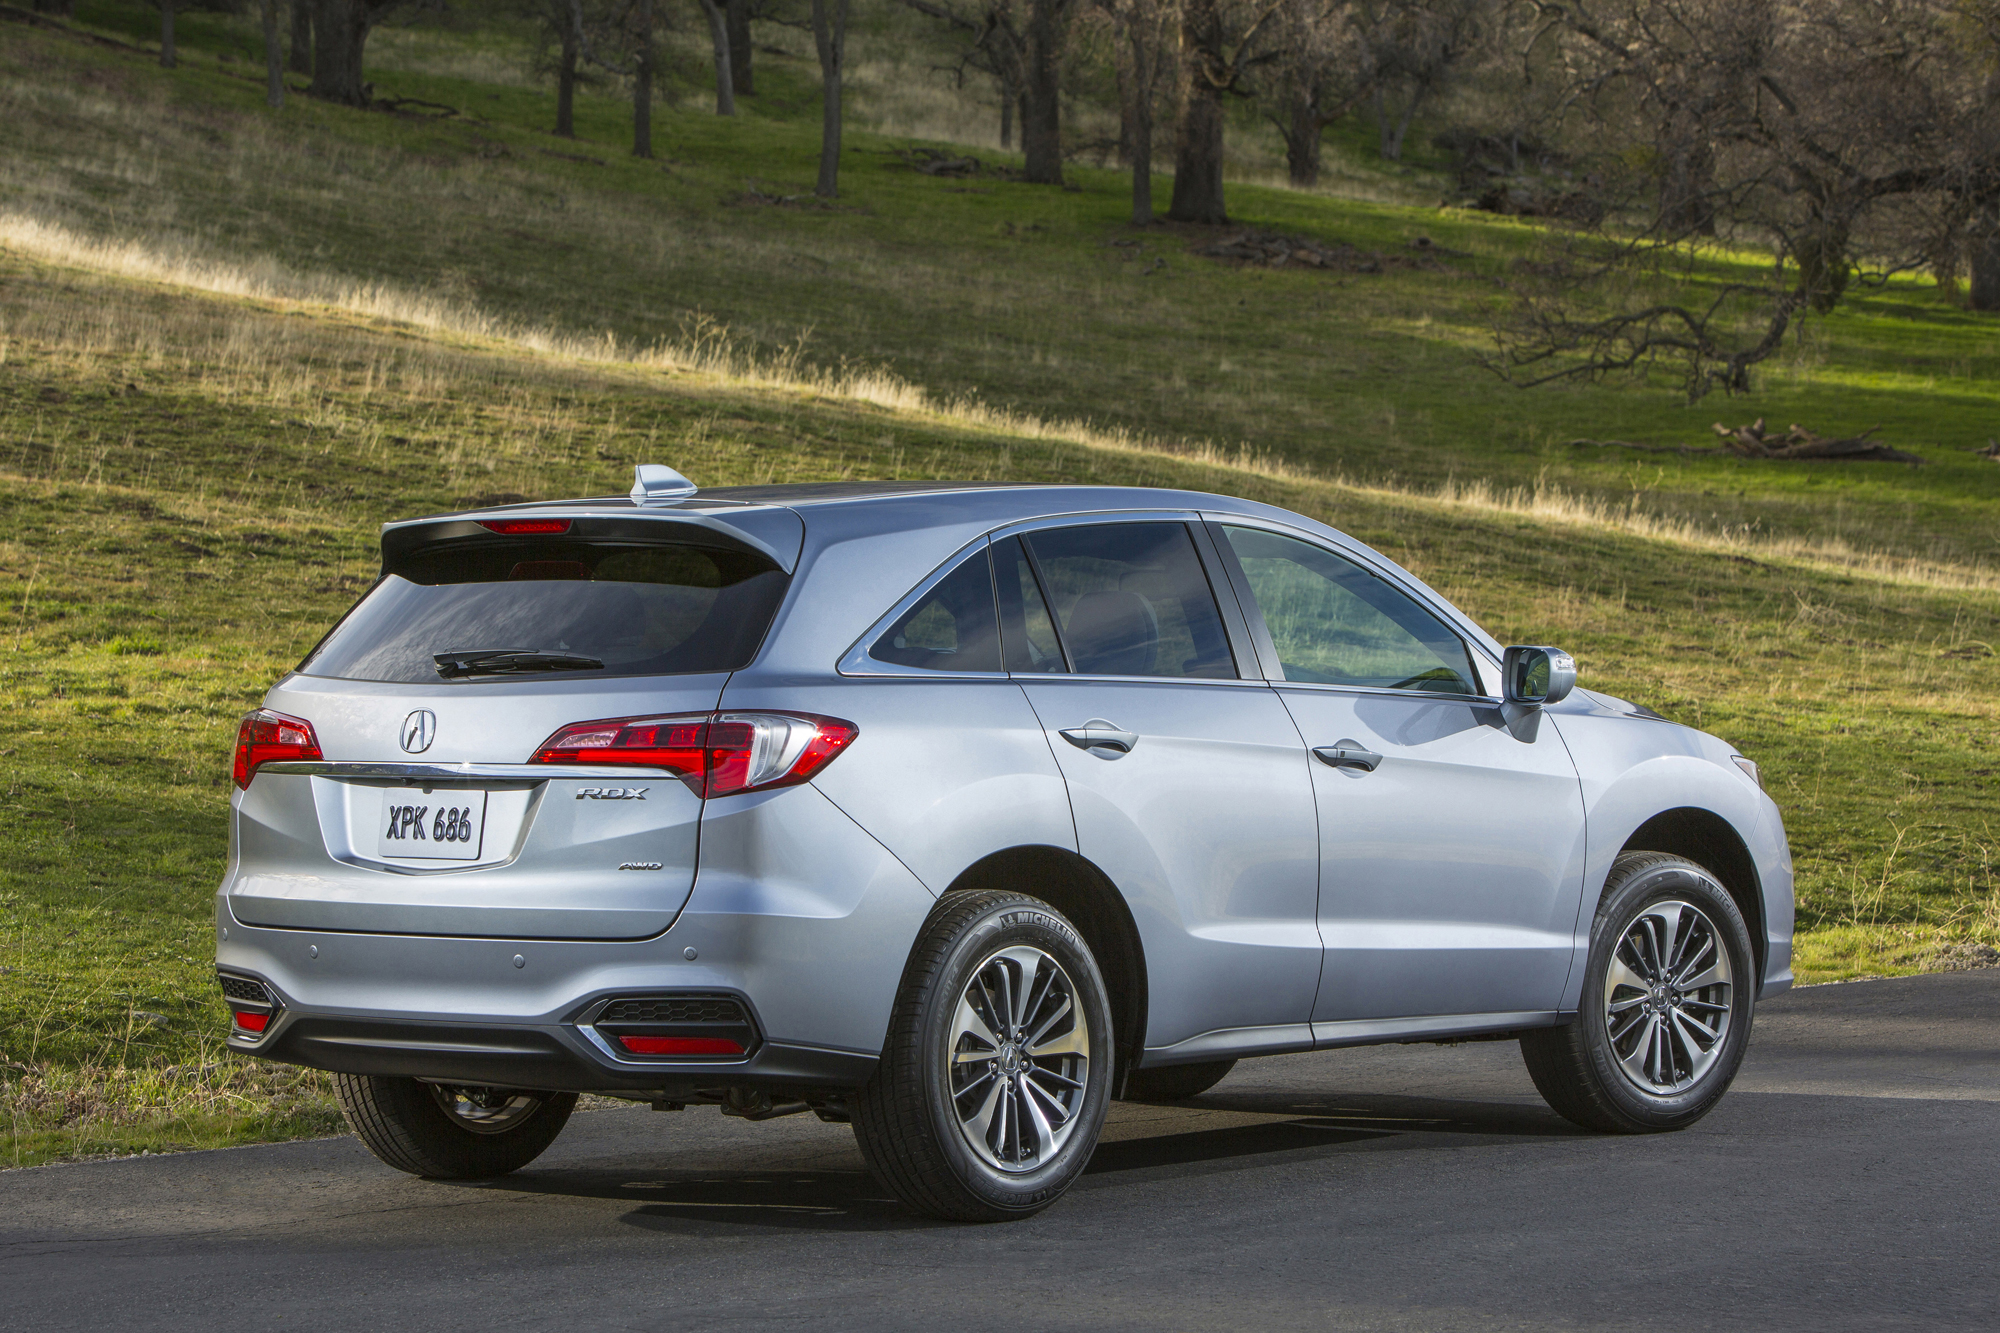 rdx the 2016 acura rdx will have a starting price 2016 acura rdx ...